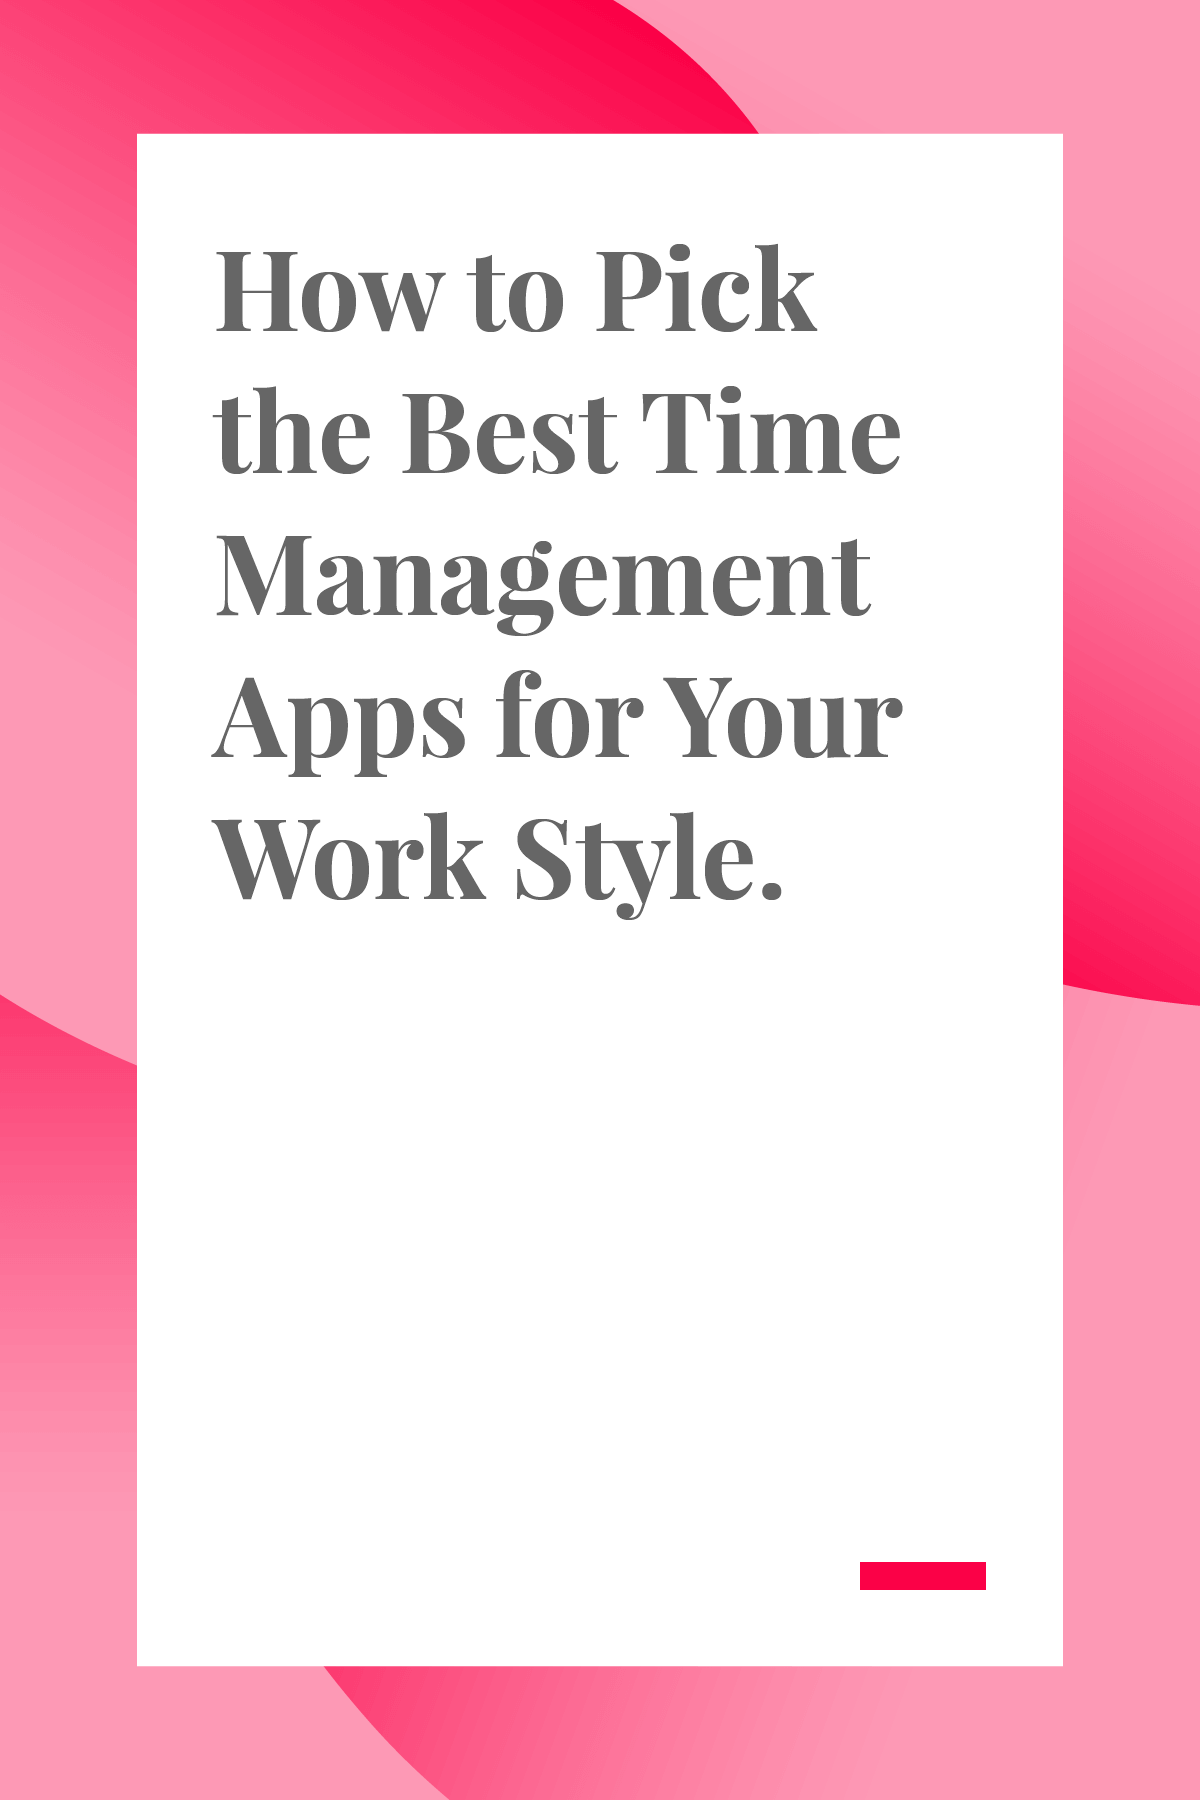 You need a customized time management tool to help you stay on track. Here's our list of the best time management apps for every work style and personality. #timemanagement